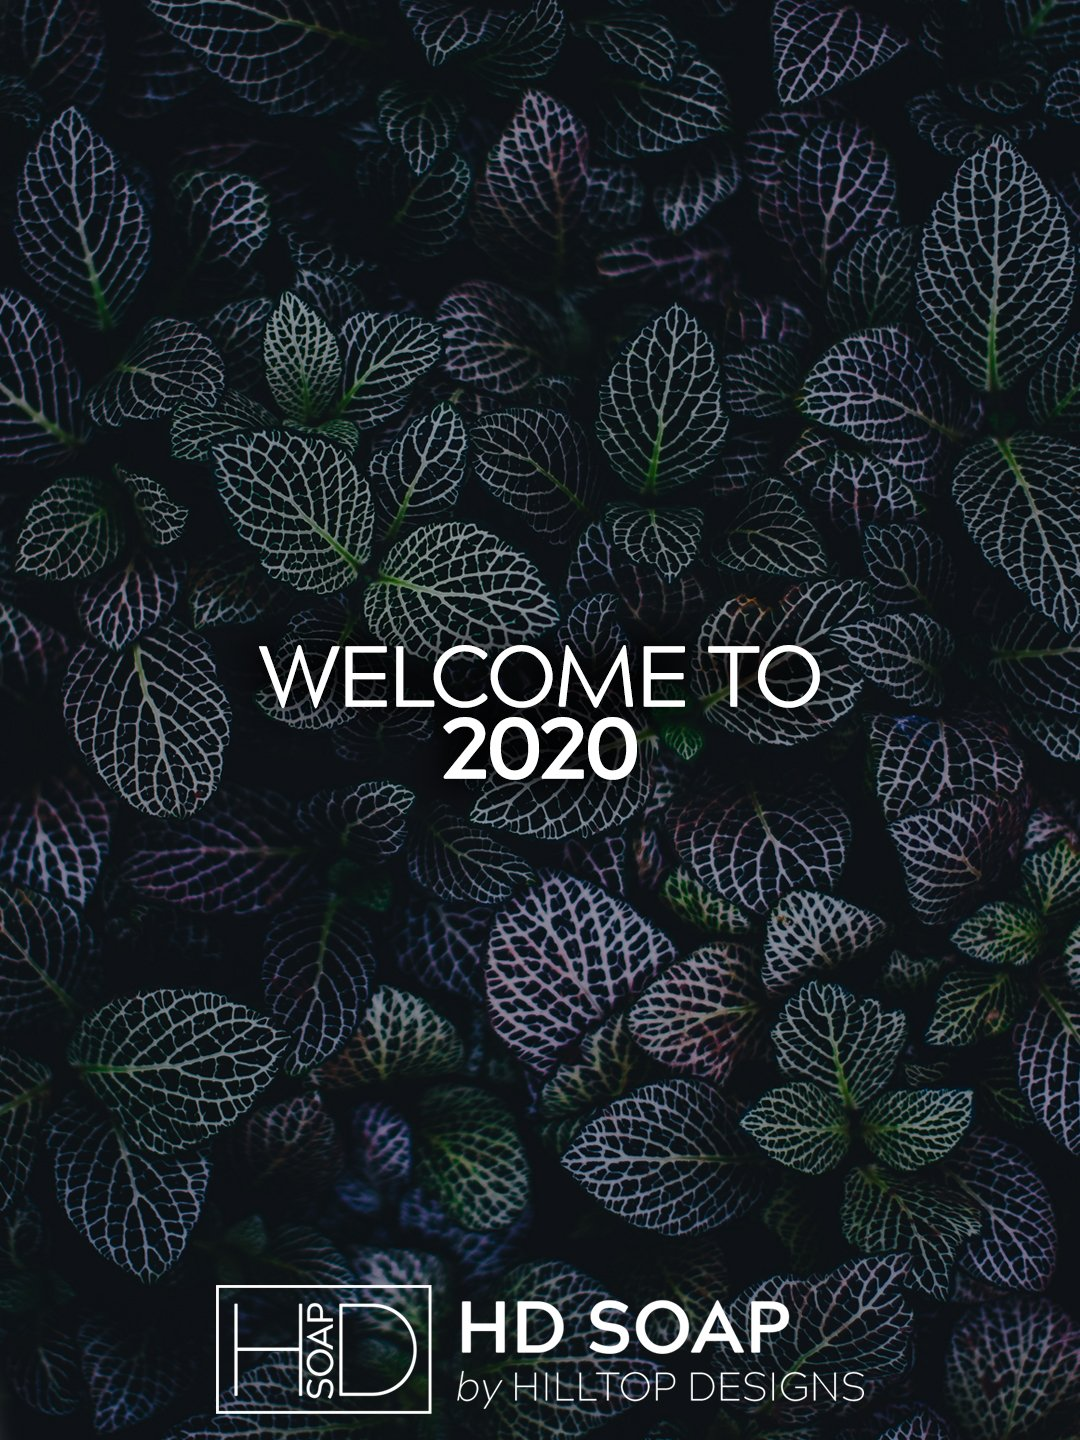 HD Soap | Welcome To 2020